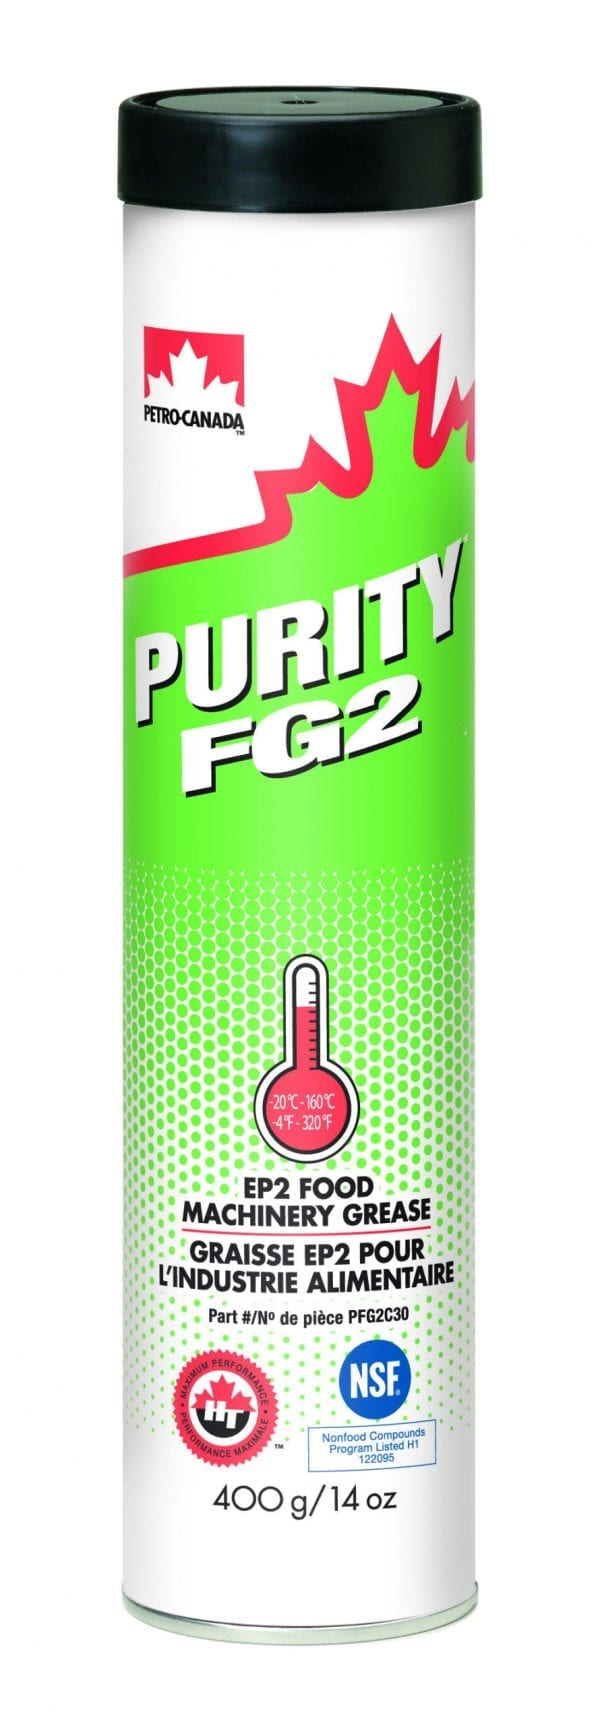 Purity FG2 Grease